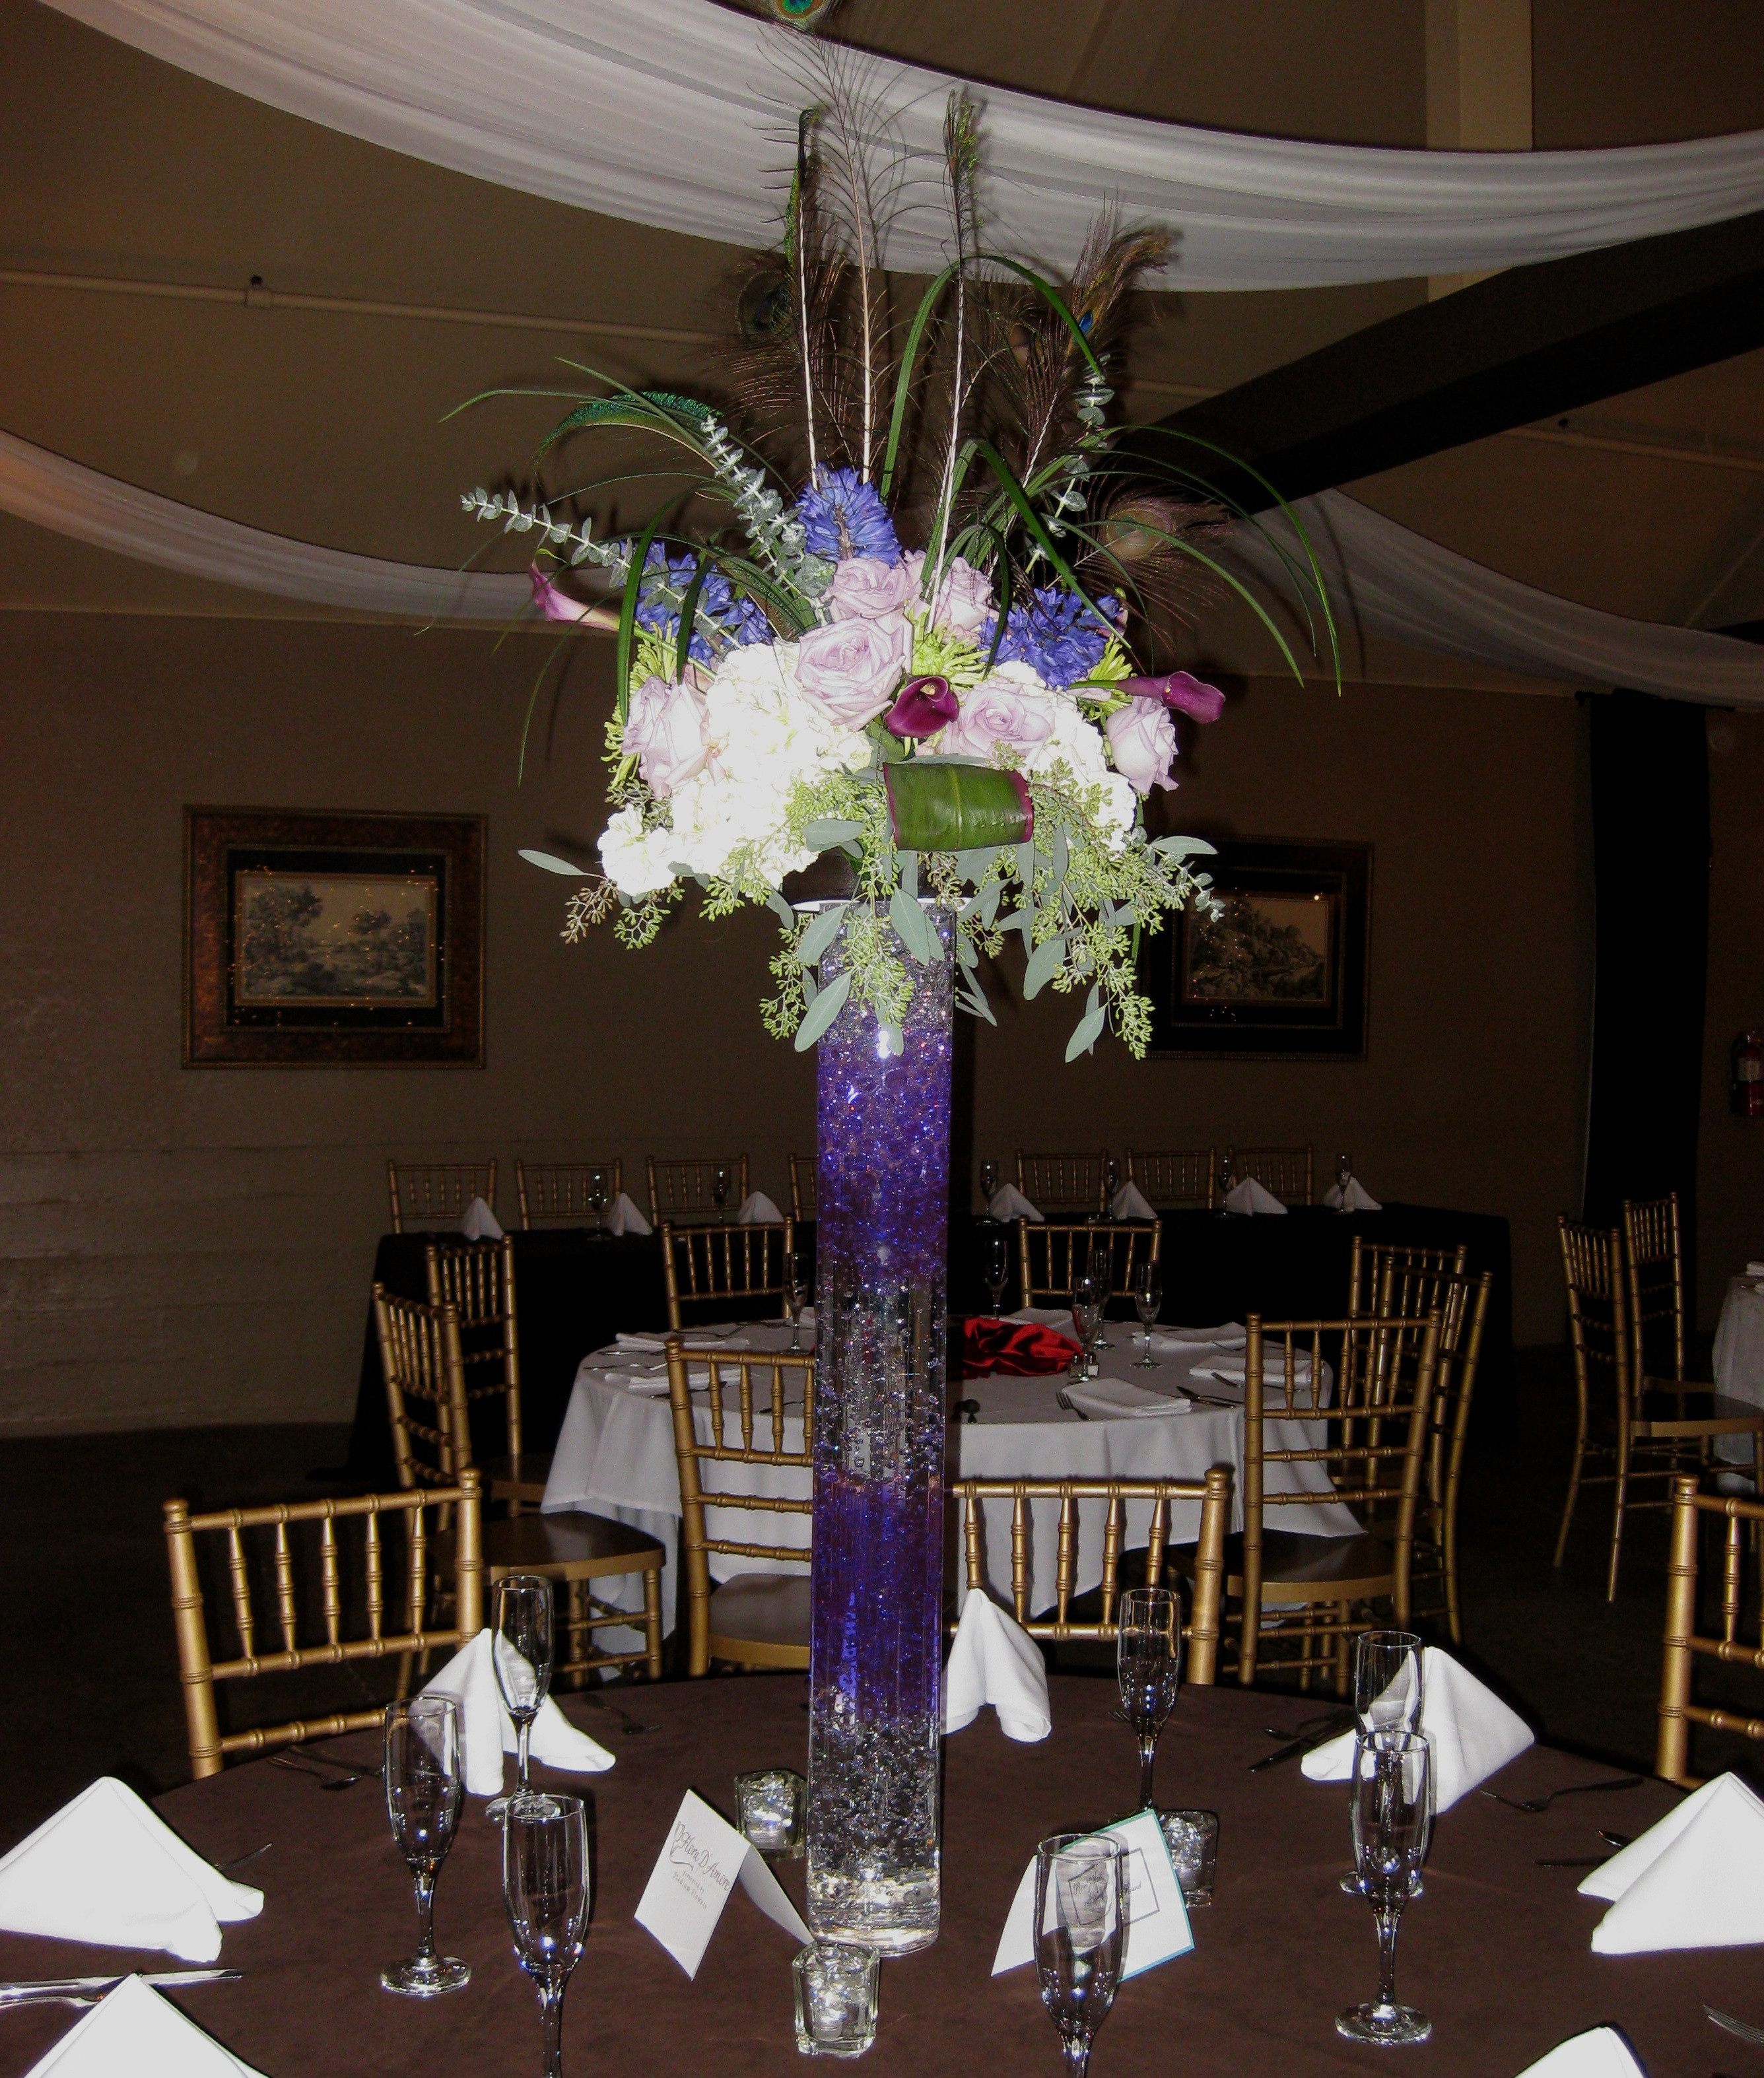 extra tall vases wedding of how to make flower arrangements in a tall vase flowers healthy regarding tall wedding flower centerpieces ideas tall vase flower arrangement ideas flowers healthy